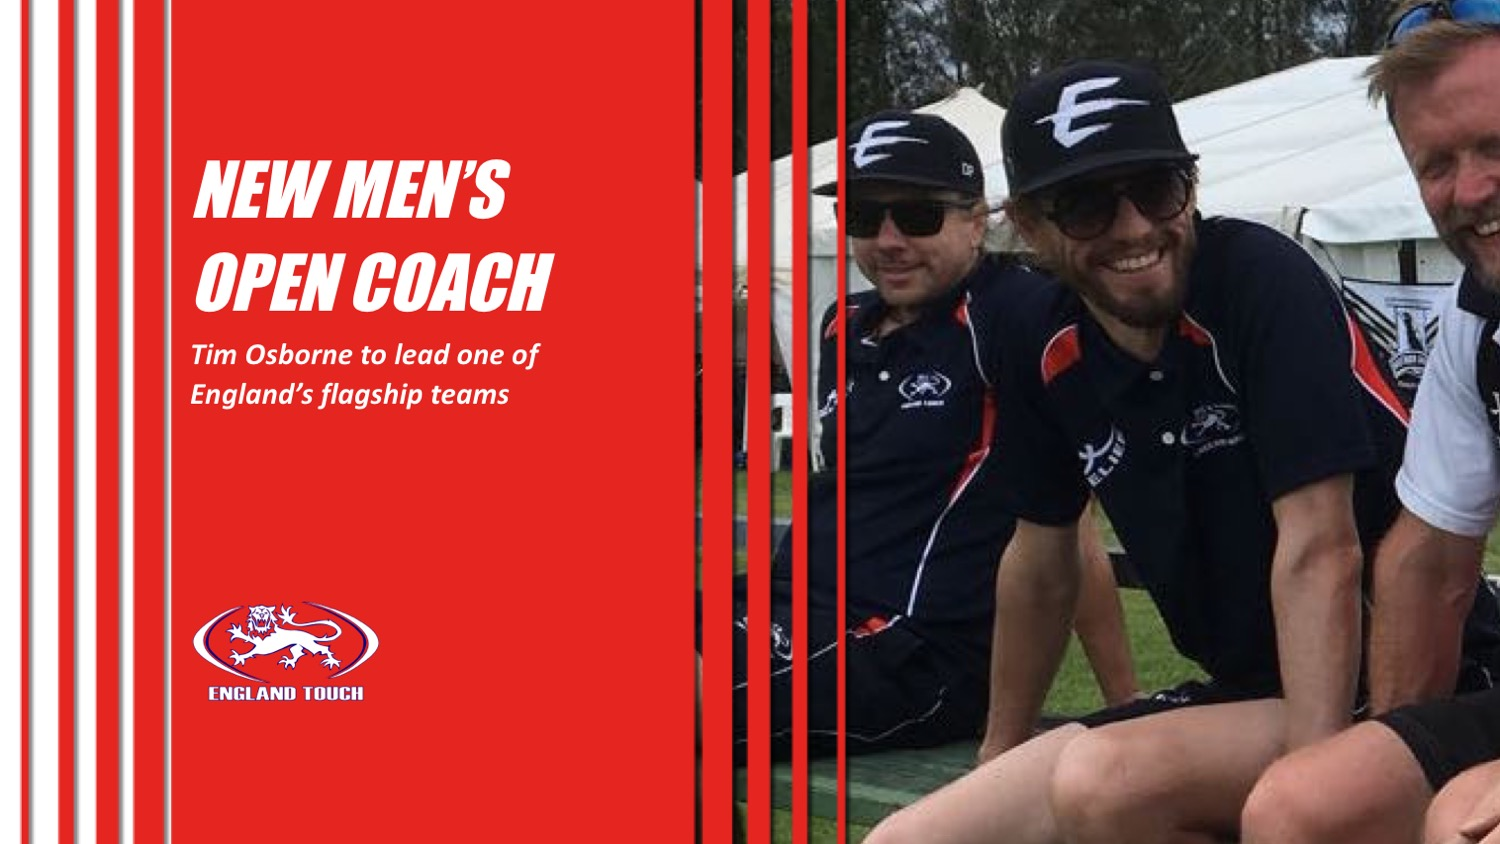 Tim Osborne appointed new Men's Open coach